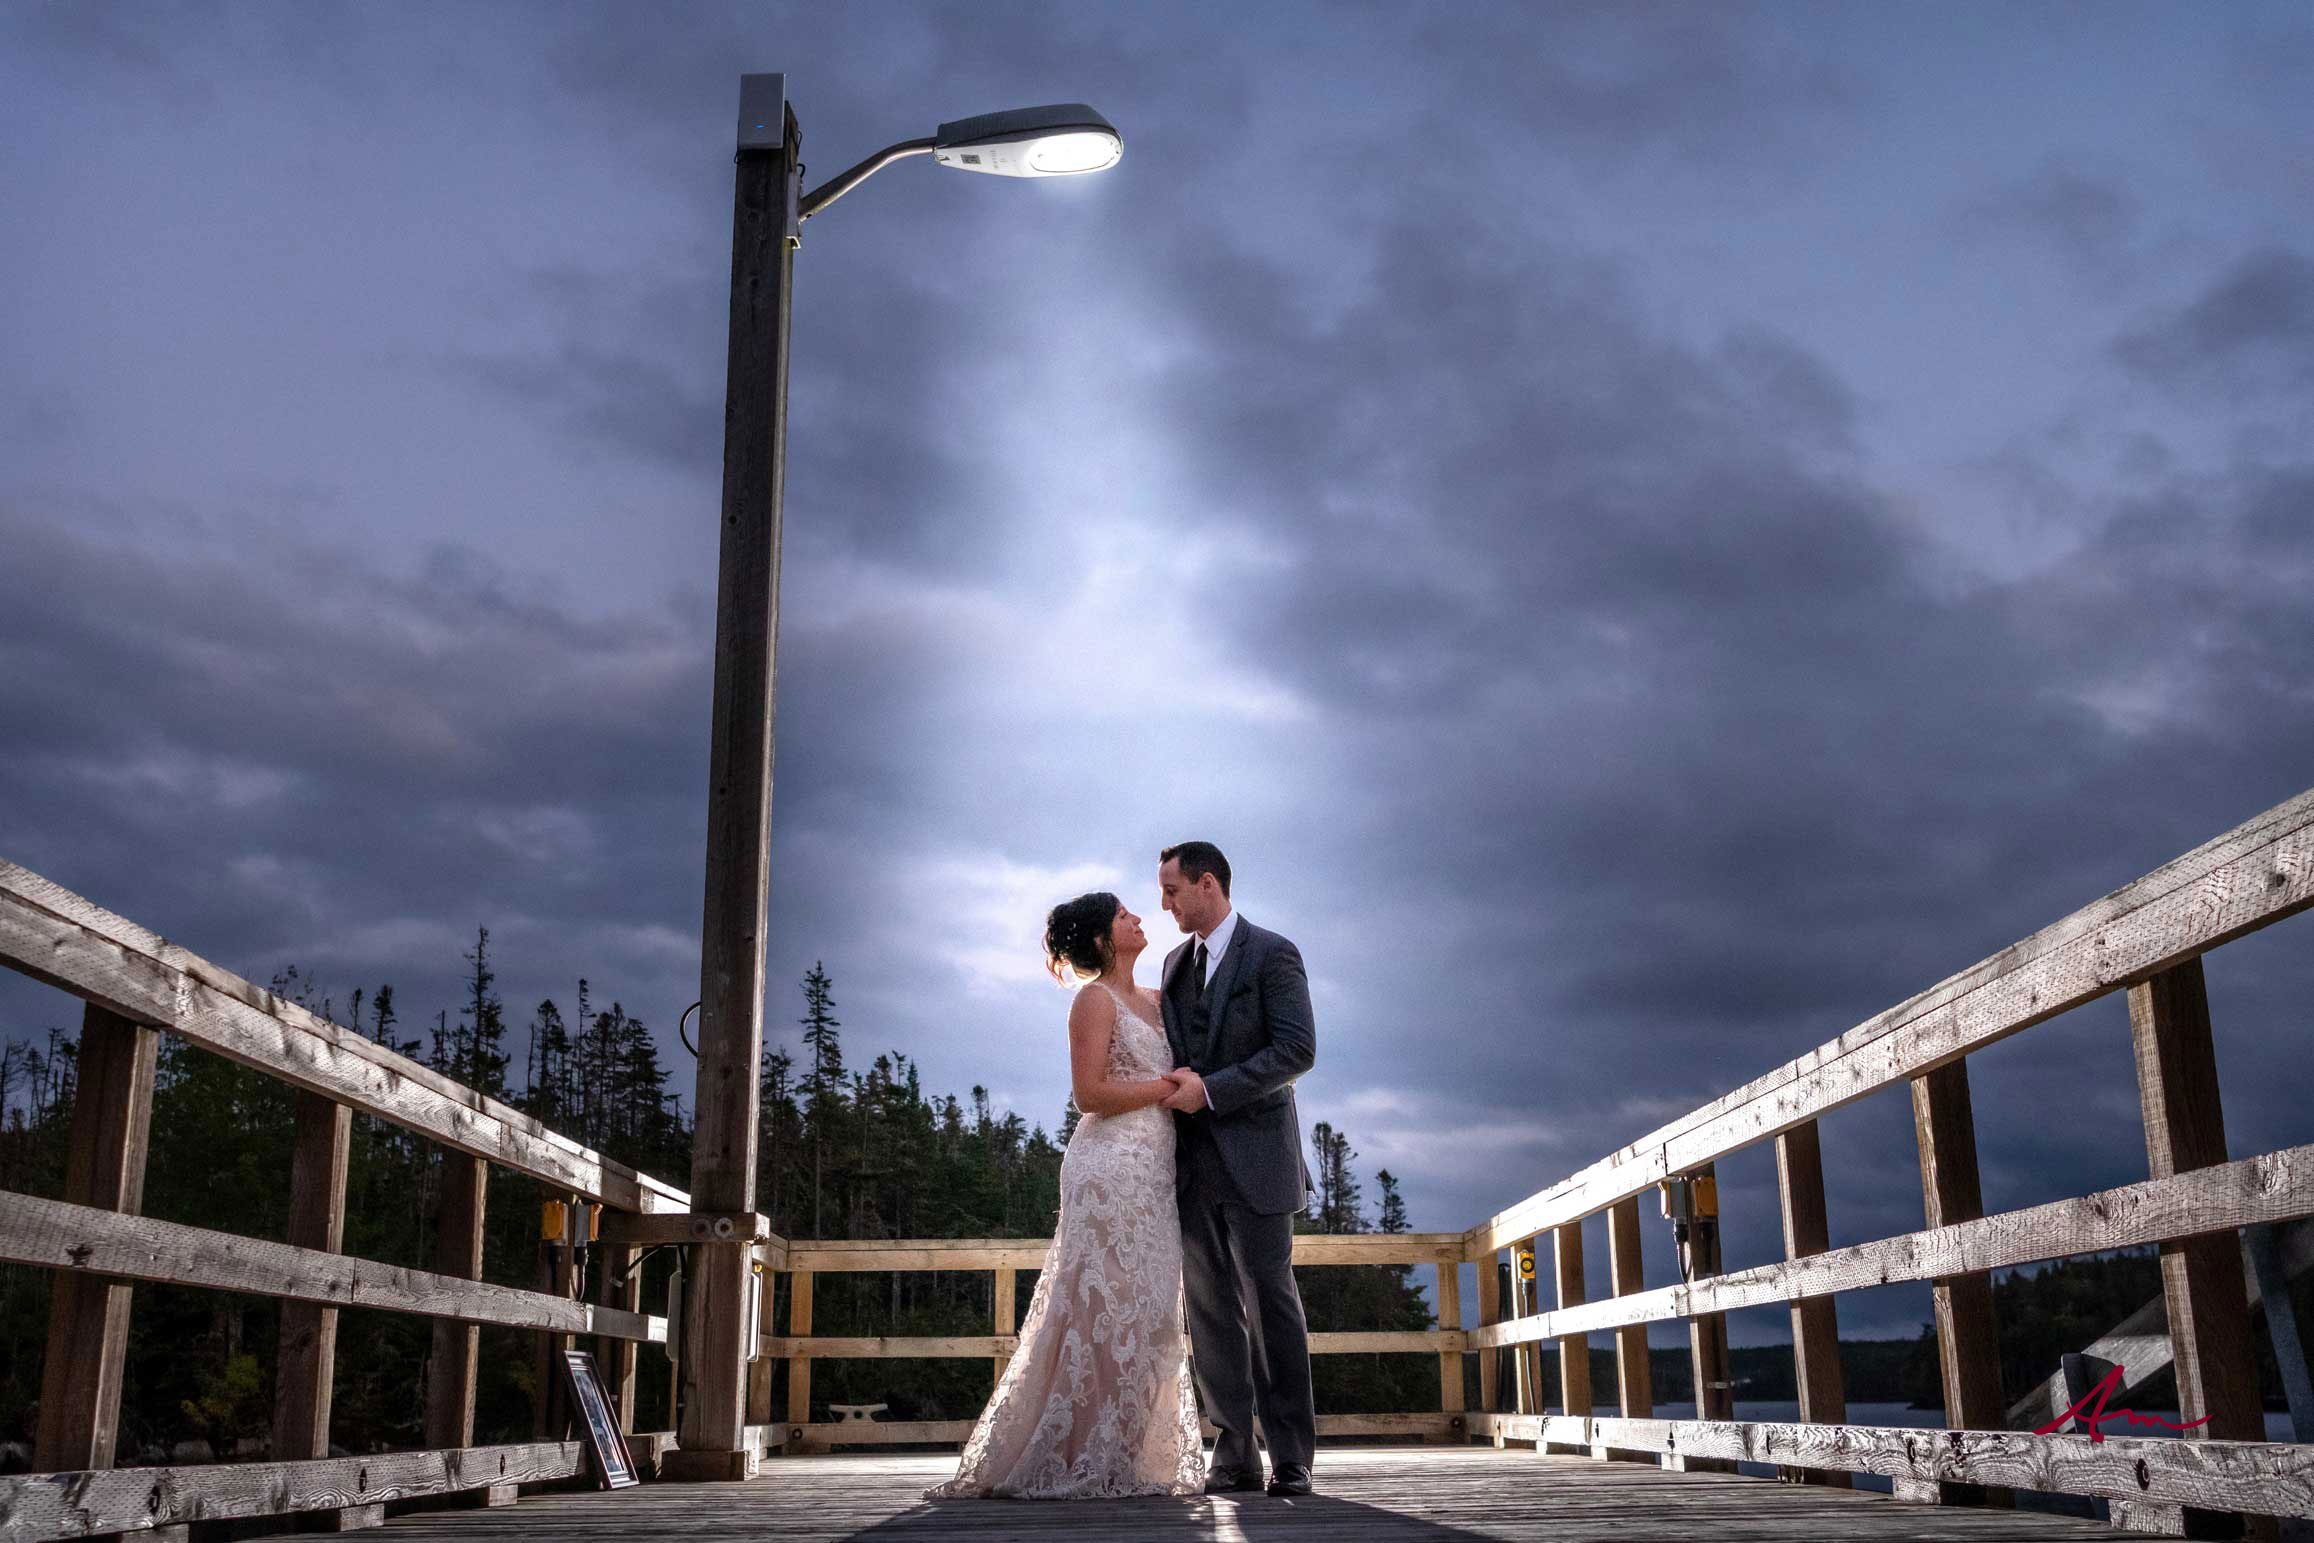 Liscombe-wedding-dock-night.jpg